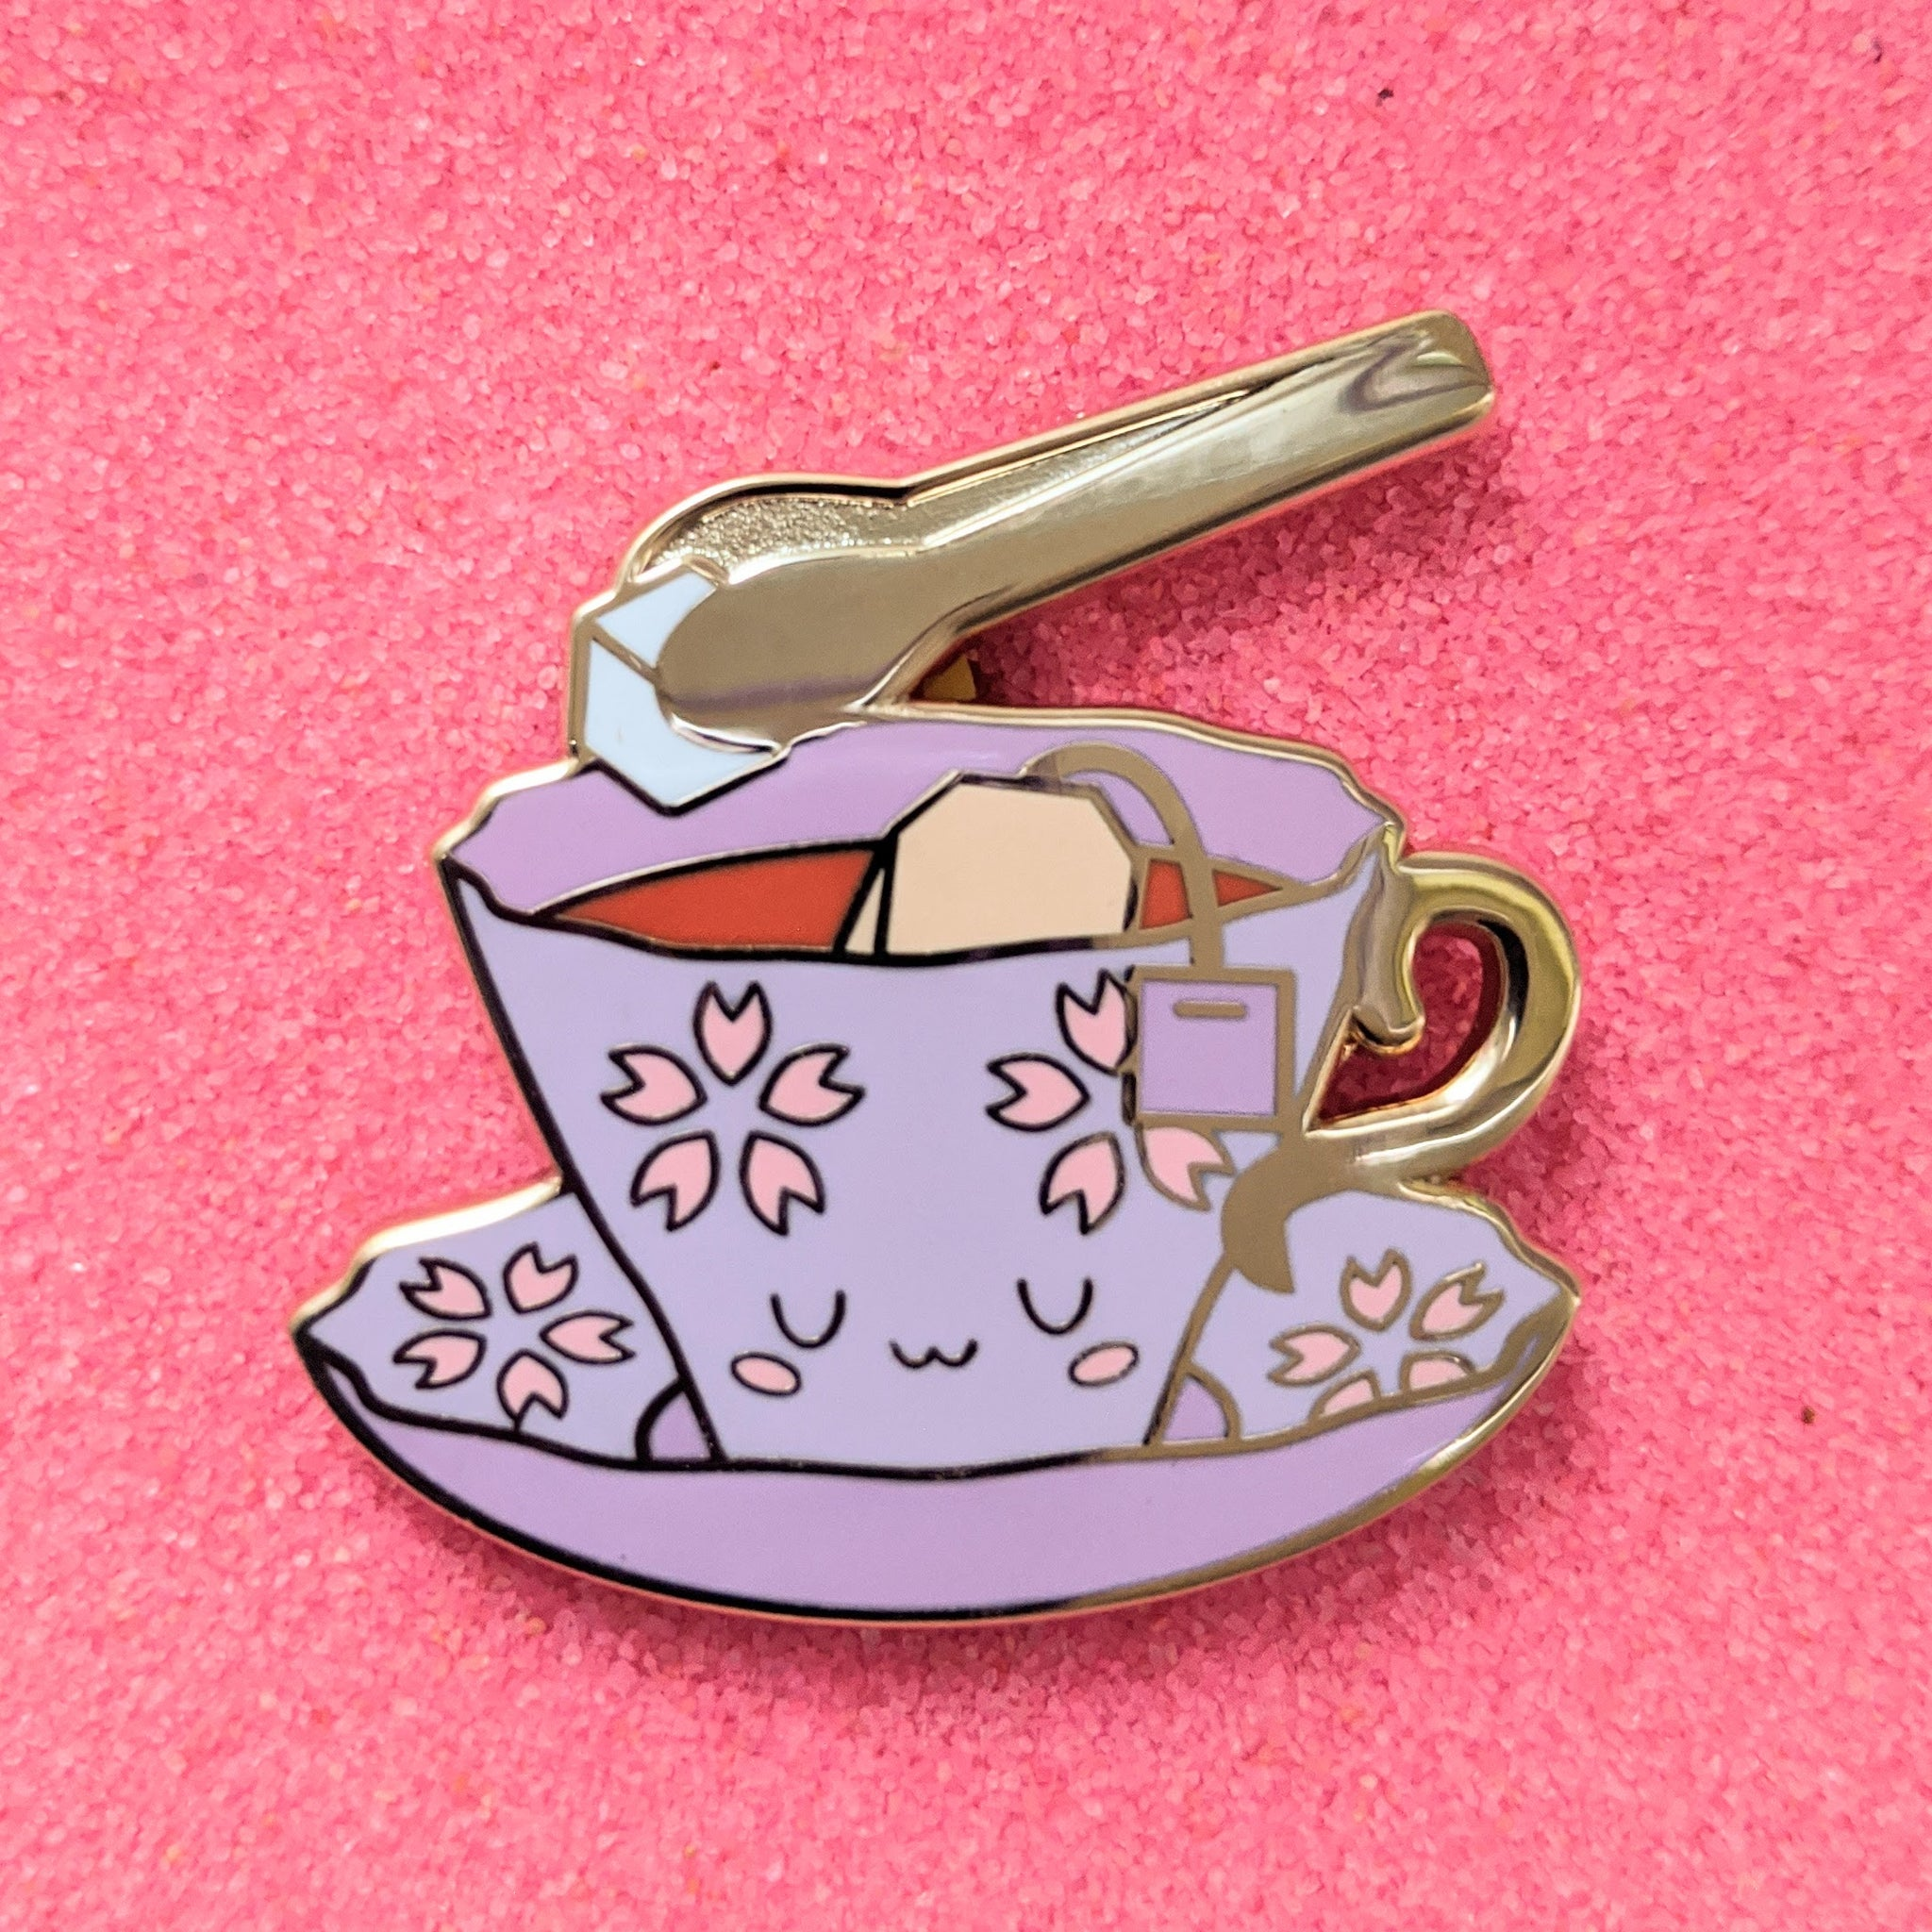 Foodie Tea and Sugar - Enamel Pin